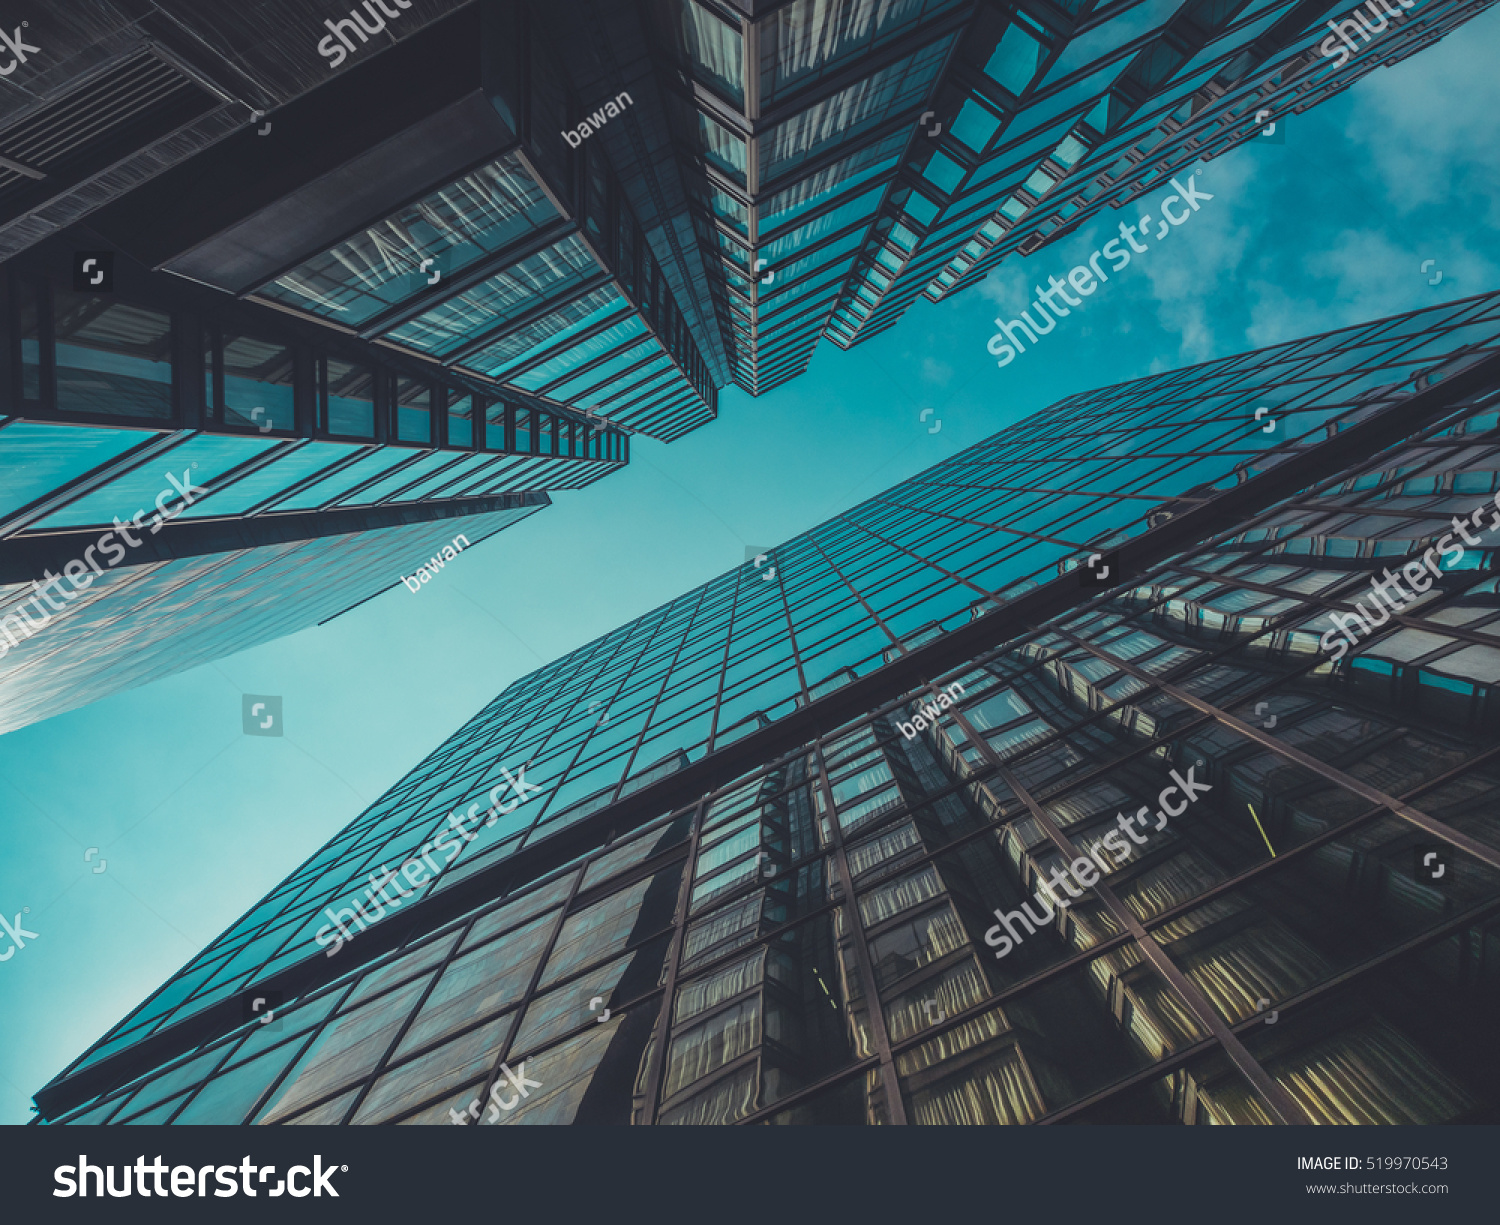 Skyscraper Buildings and Sky View #519970543